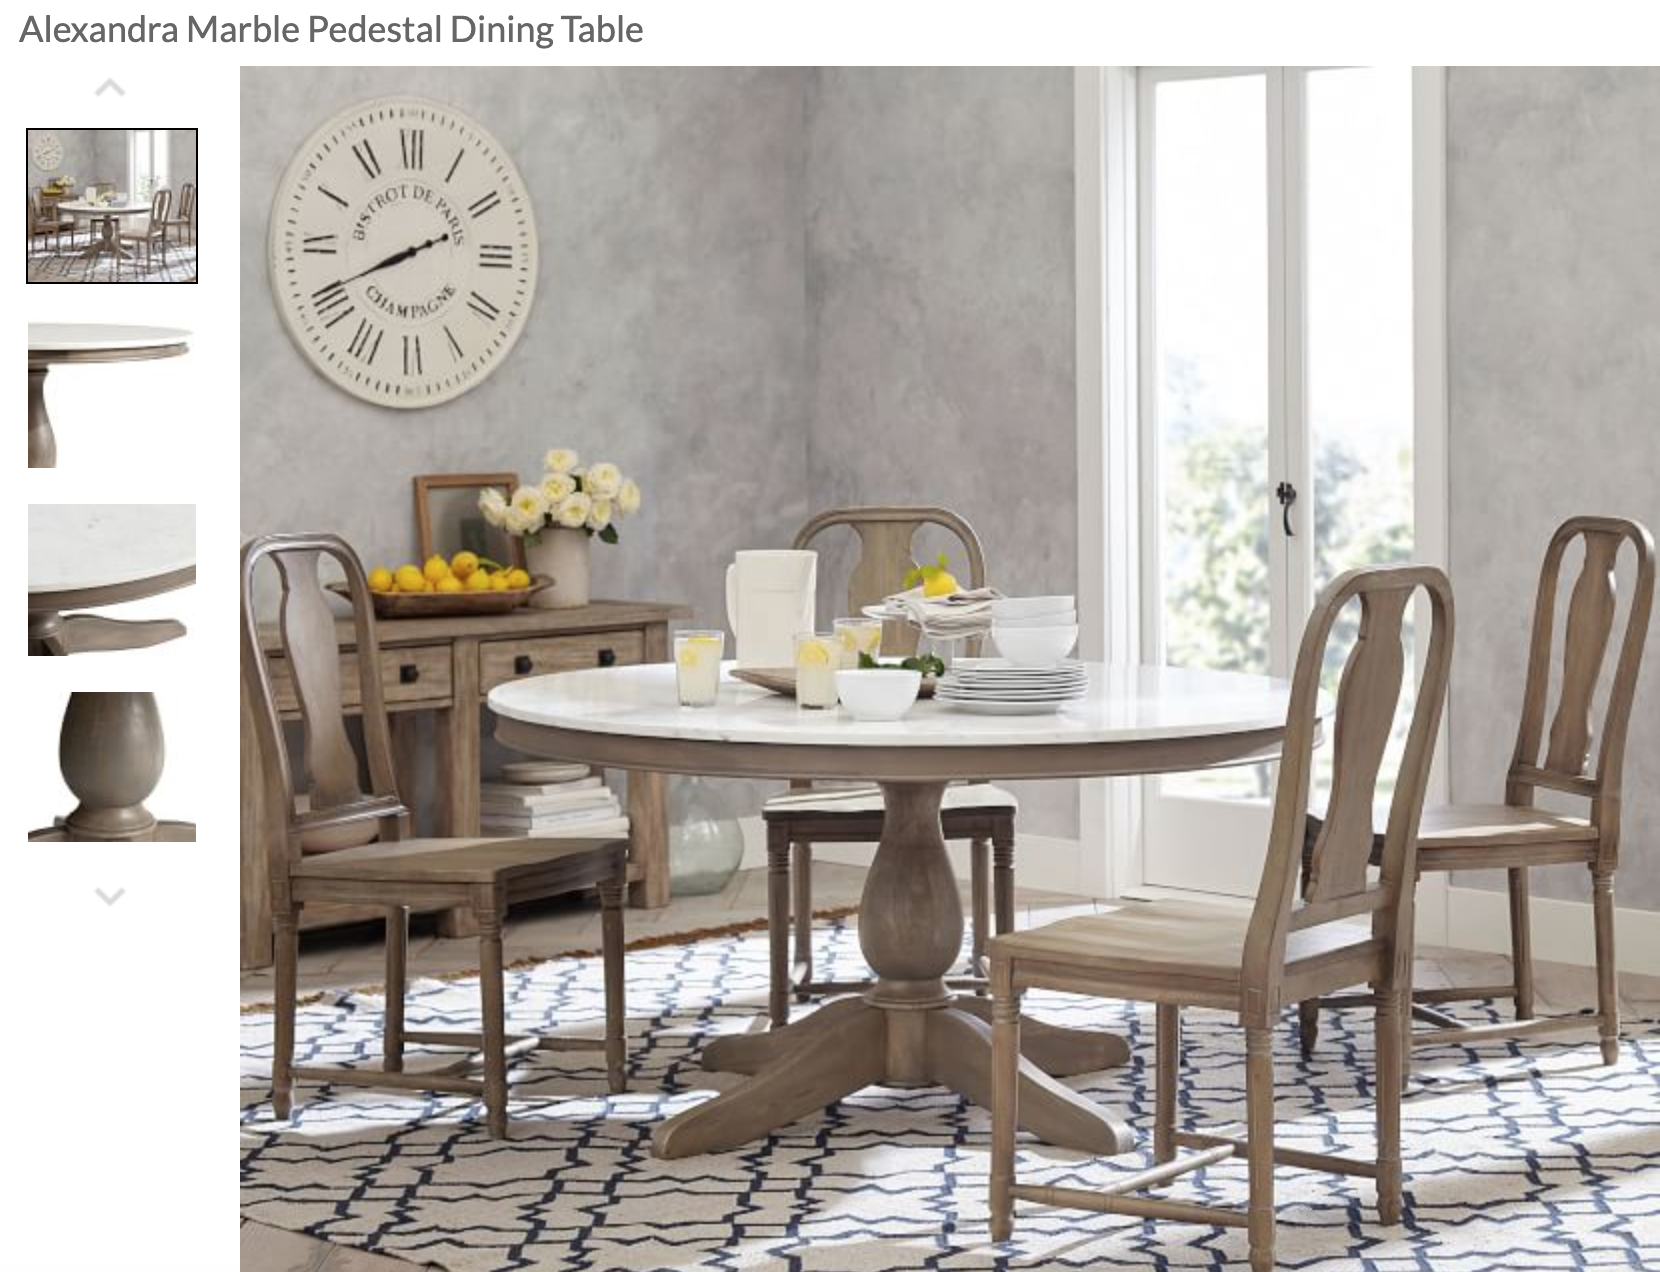 Alexandra Round Marble Pedestal Dining Table | Apt Decor For 2017 Alexandra Round Marble Pedestal Dining Tables (View 2 of 25)